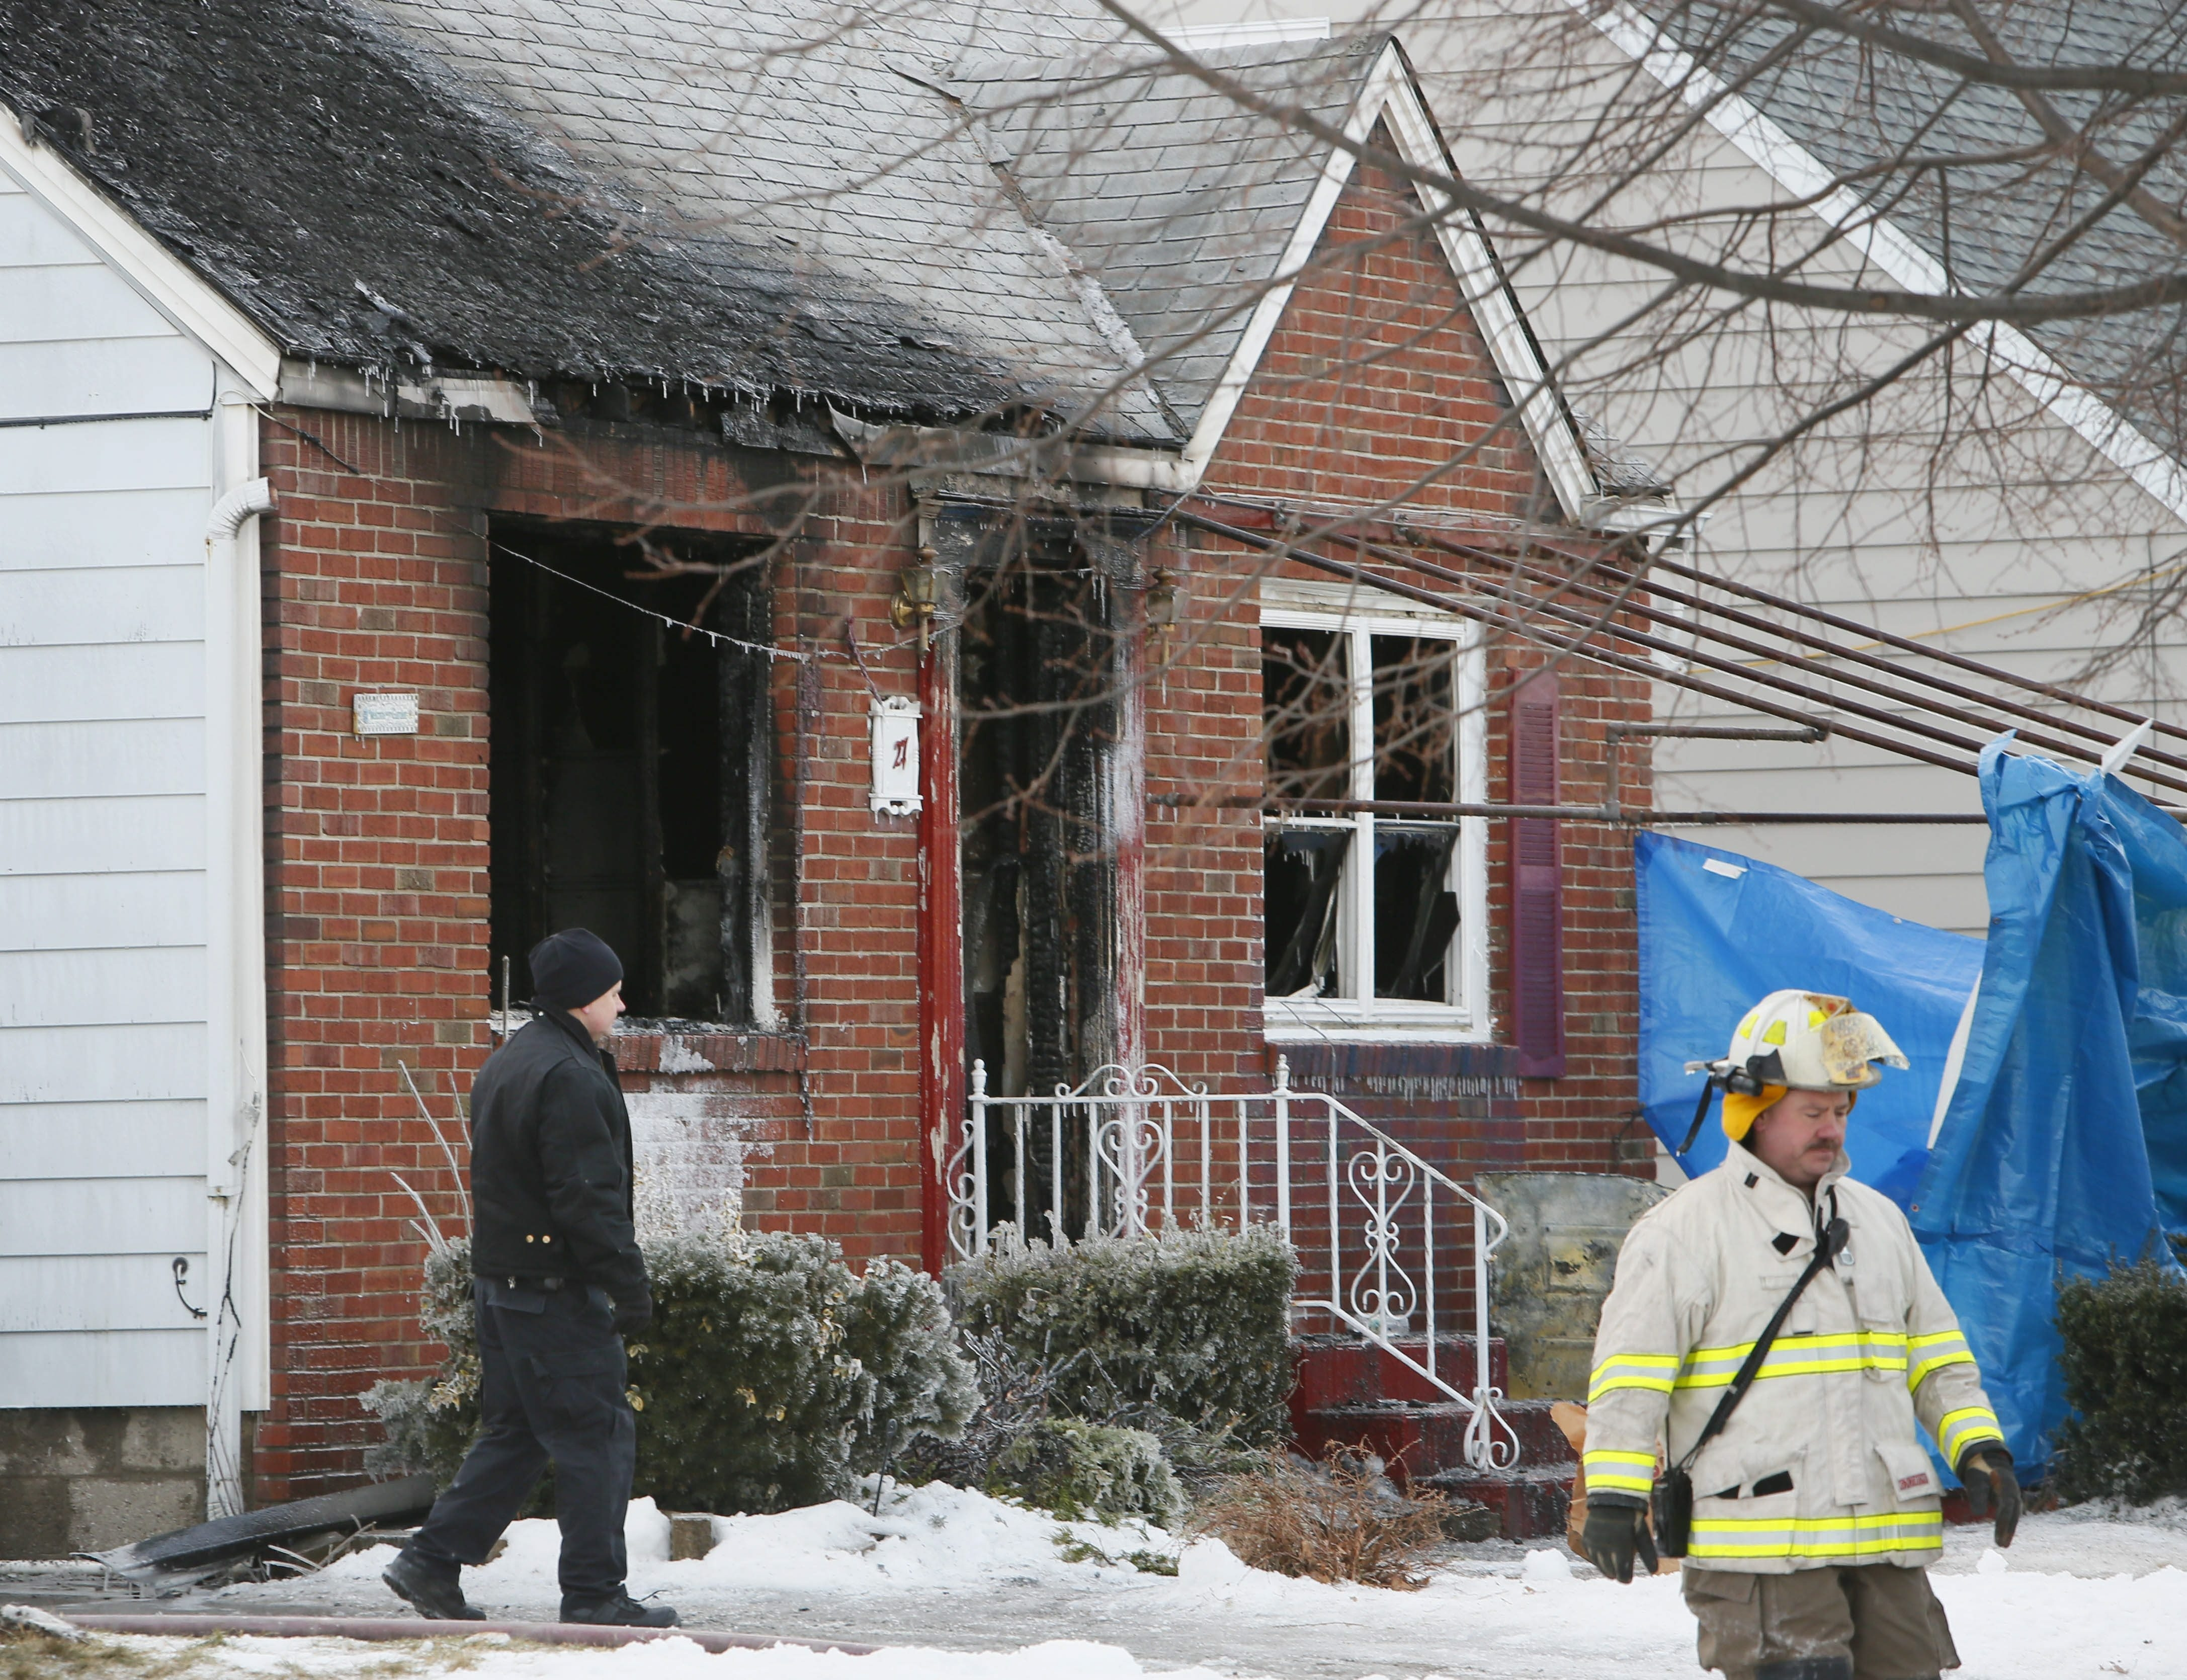 Police and firefighters investigate at the scene of a fatal house fire Tuesday on Furlong Road in Cheektowaga.